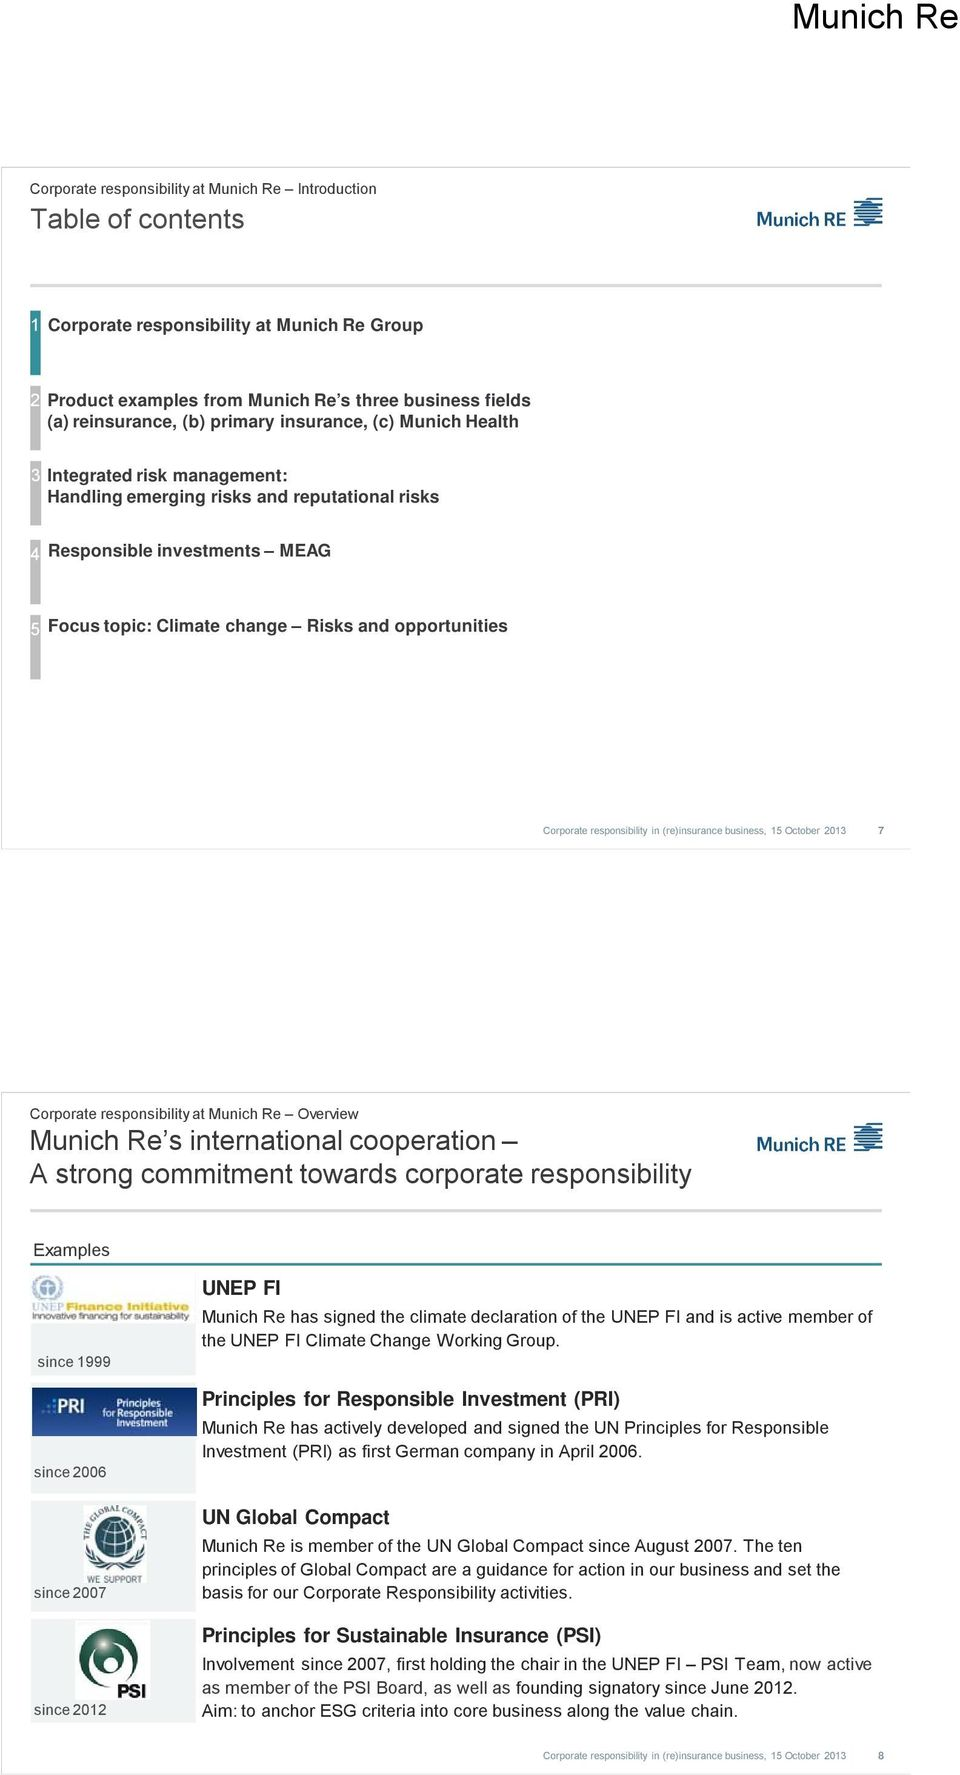 Overview Munich Re s international cooperation A strong commitment towards corporate responsibility Examples since 1999 since 2006 since 2007 since 2012 UNEP FI Munich Re has signed the climate